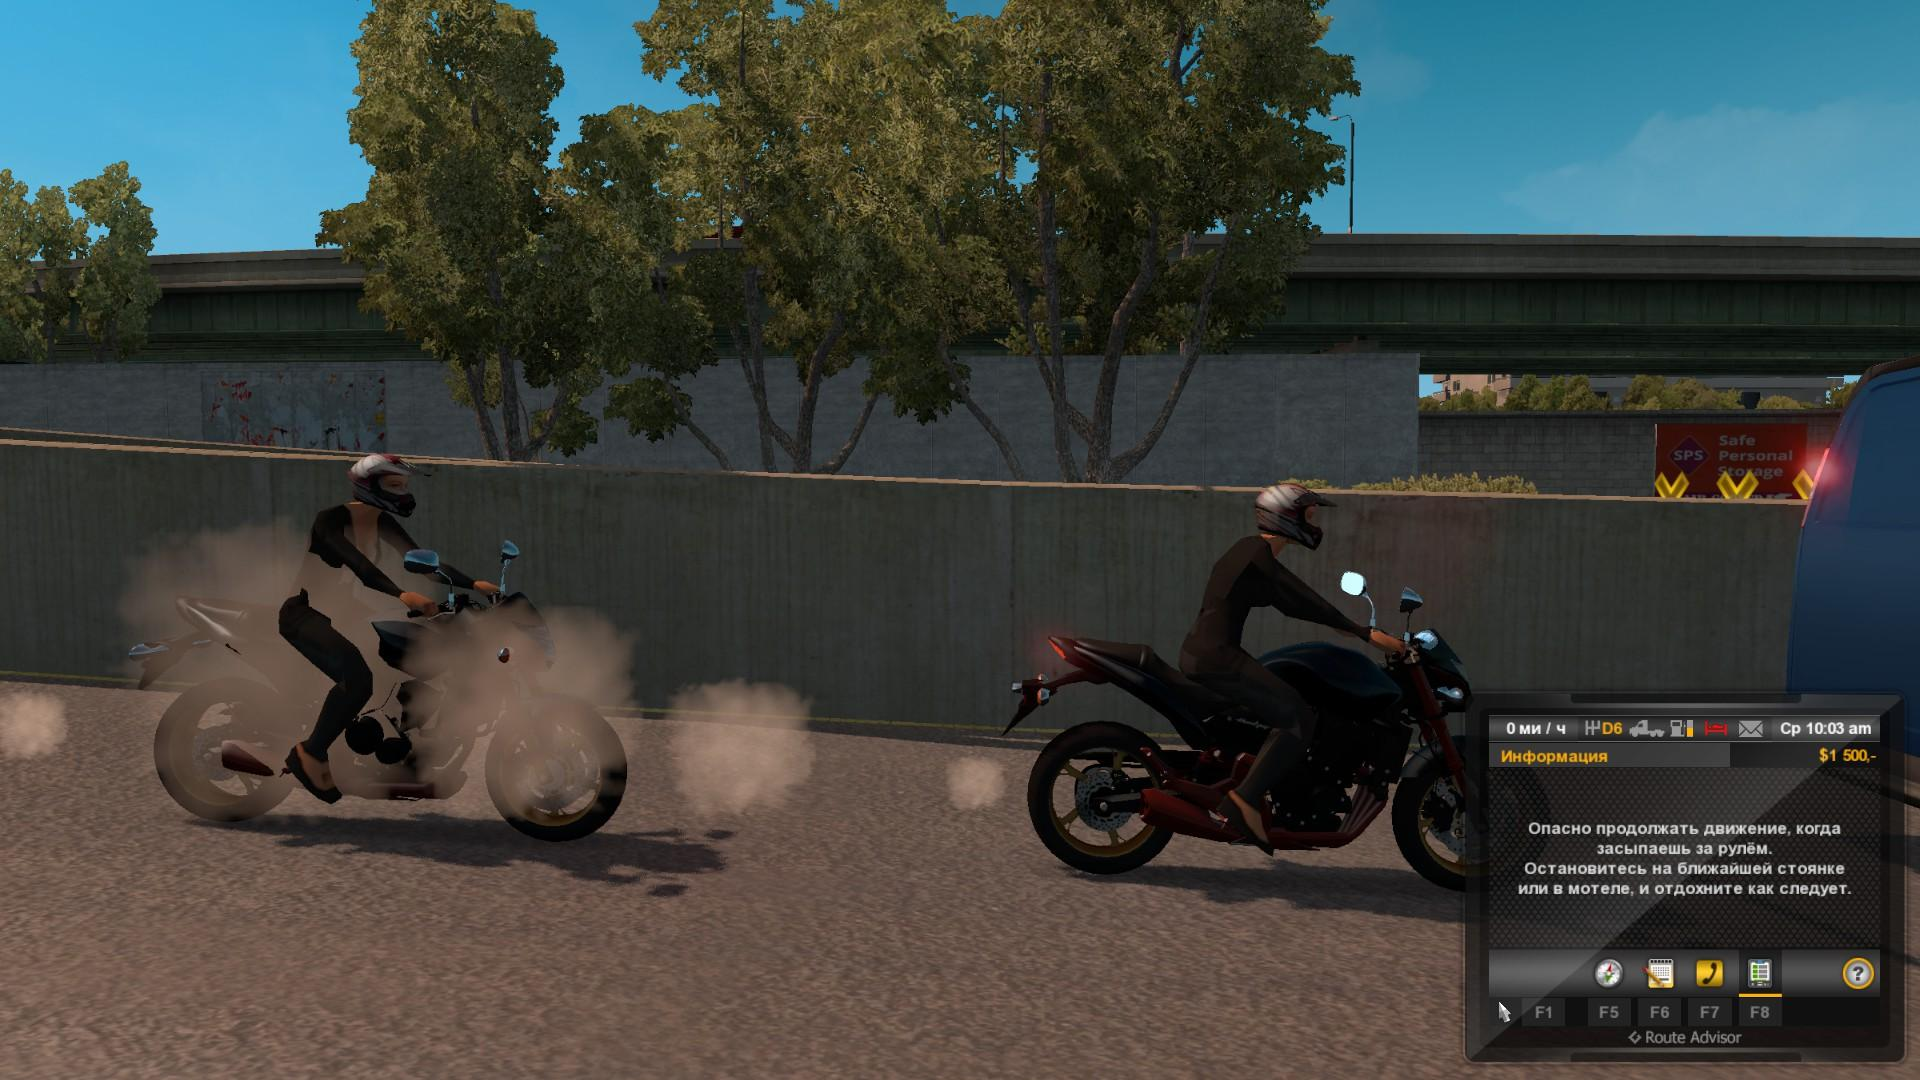 MOTORCYCLE-IN-TRAFFIC-V1.0.0-MOD-1.jpg